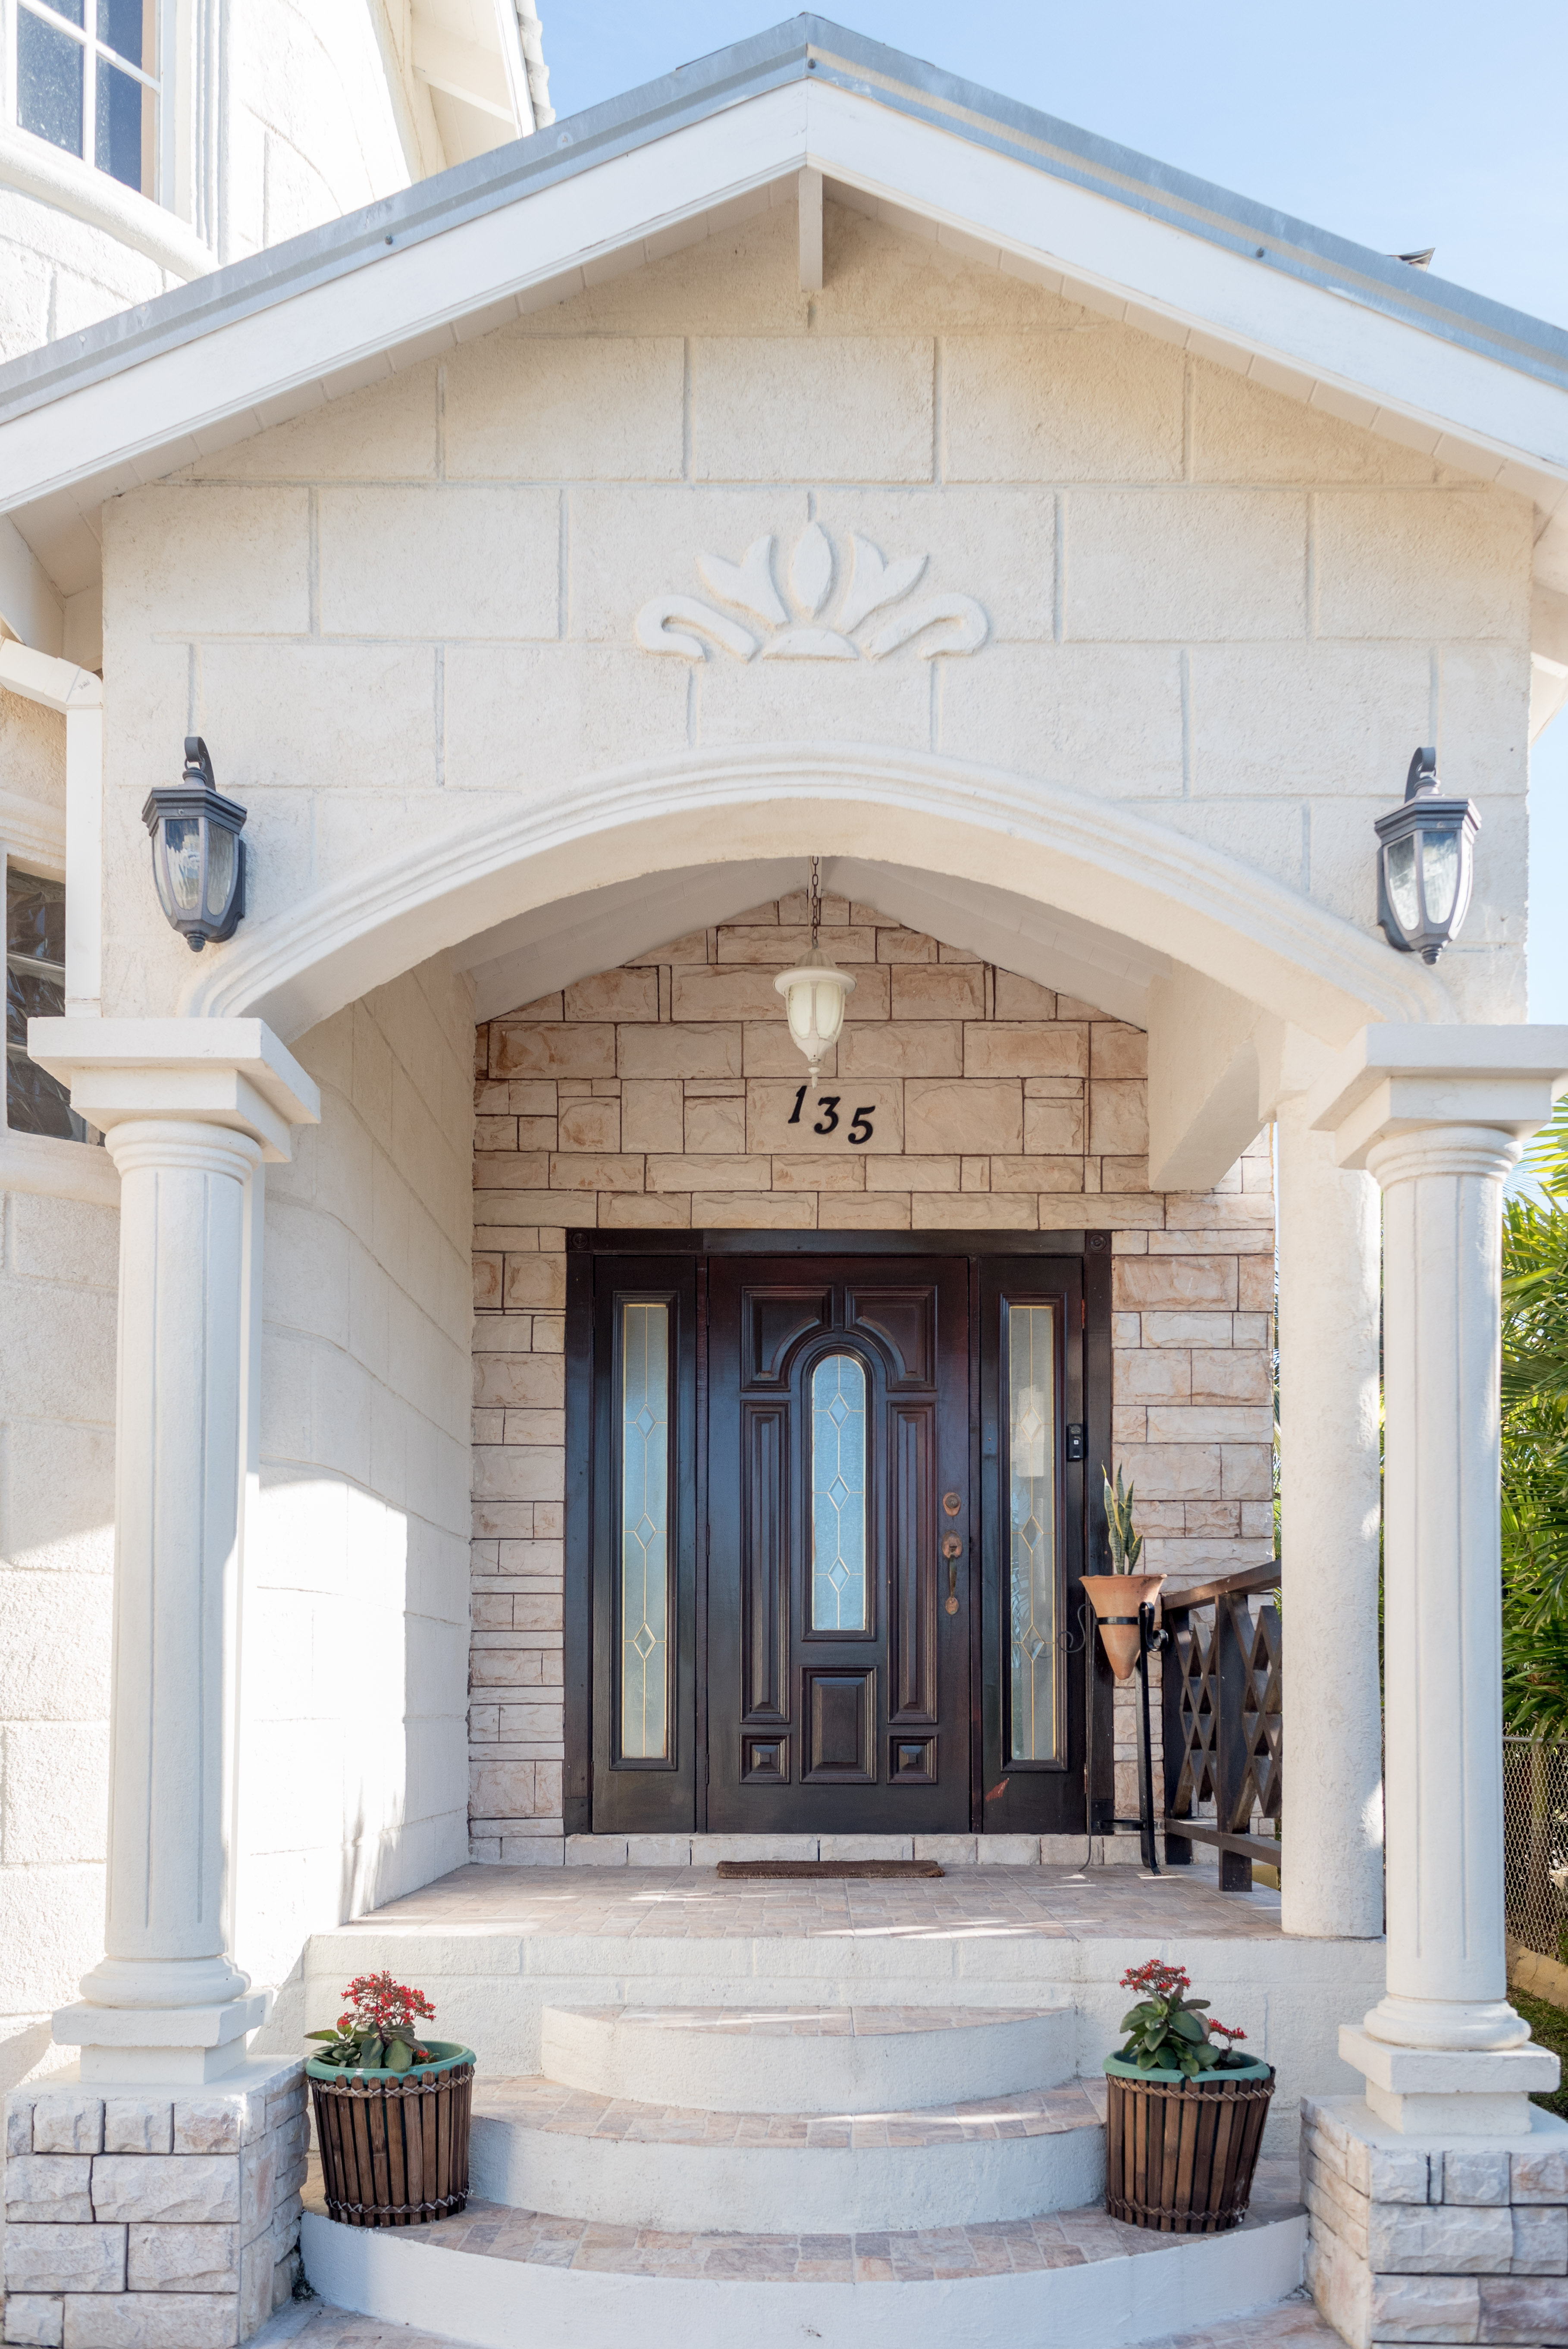 EMERALD LIVING | Entrance